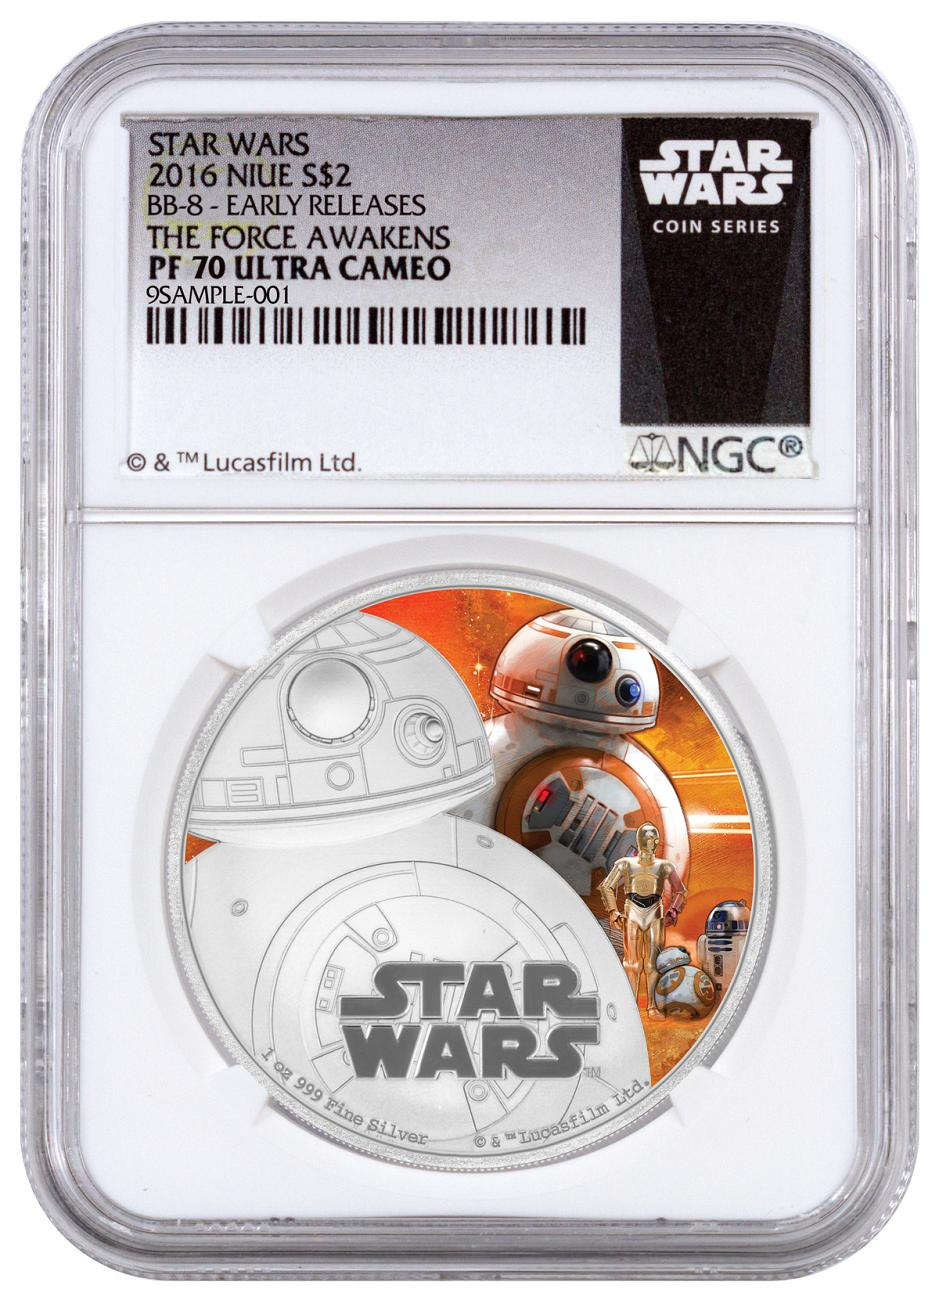 2016 Niue $2 1 oz. Colorized Proof Silver Star Wars: The Force Awakens - BB-8 - NGC PF70 UC Early Releases (Exclusive Star Wars Label)